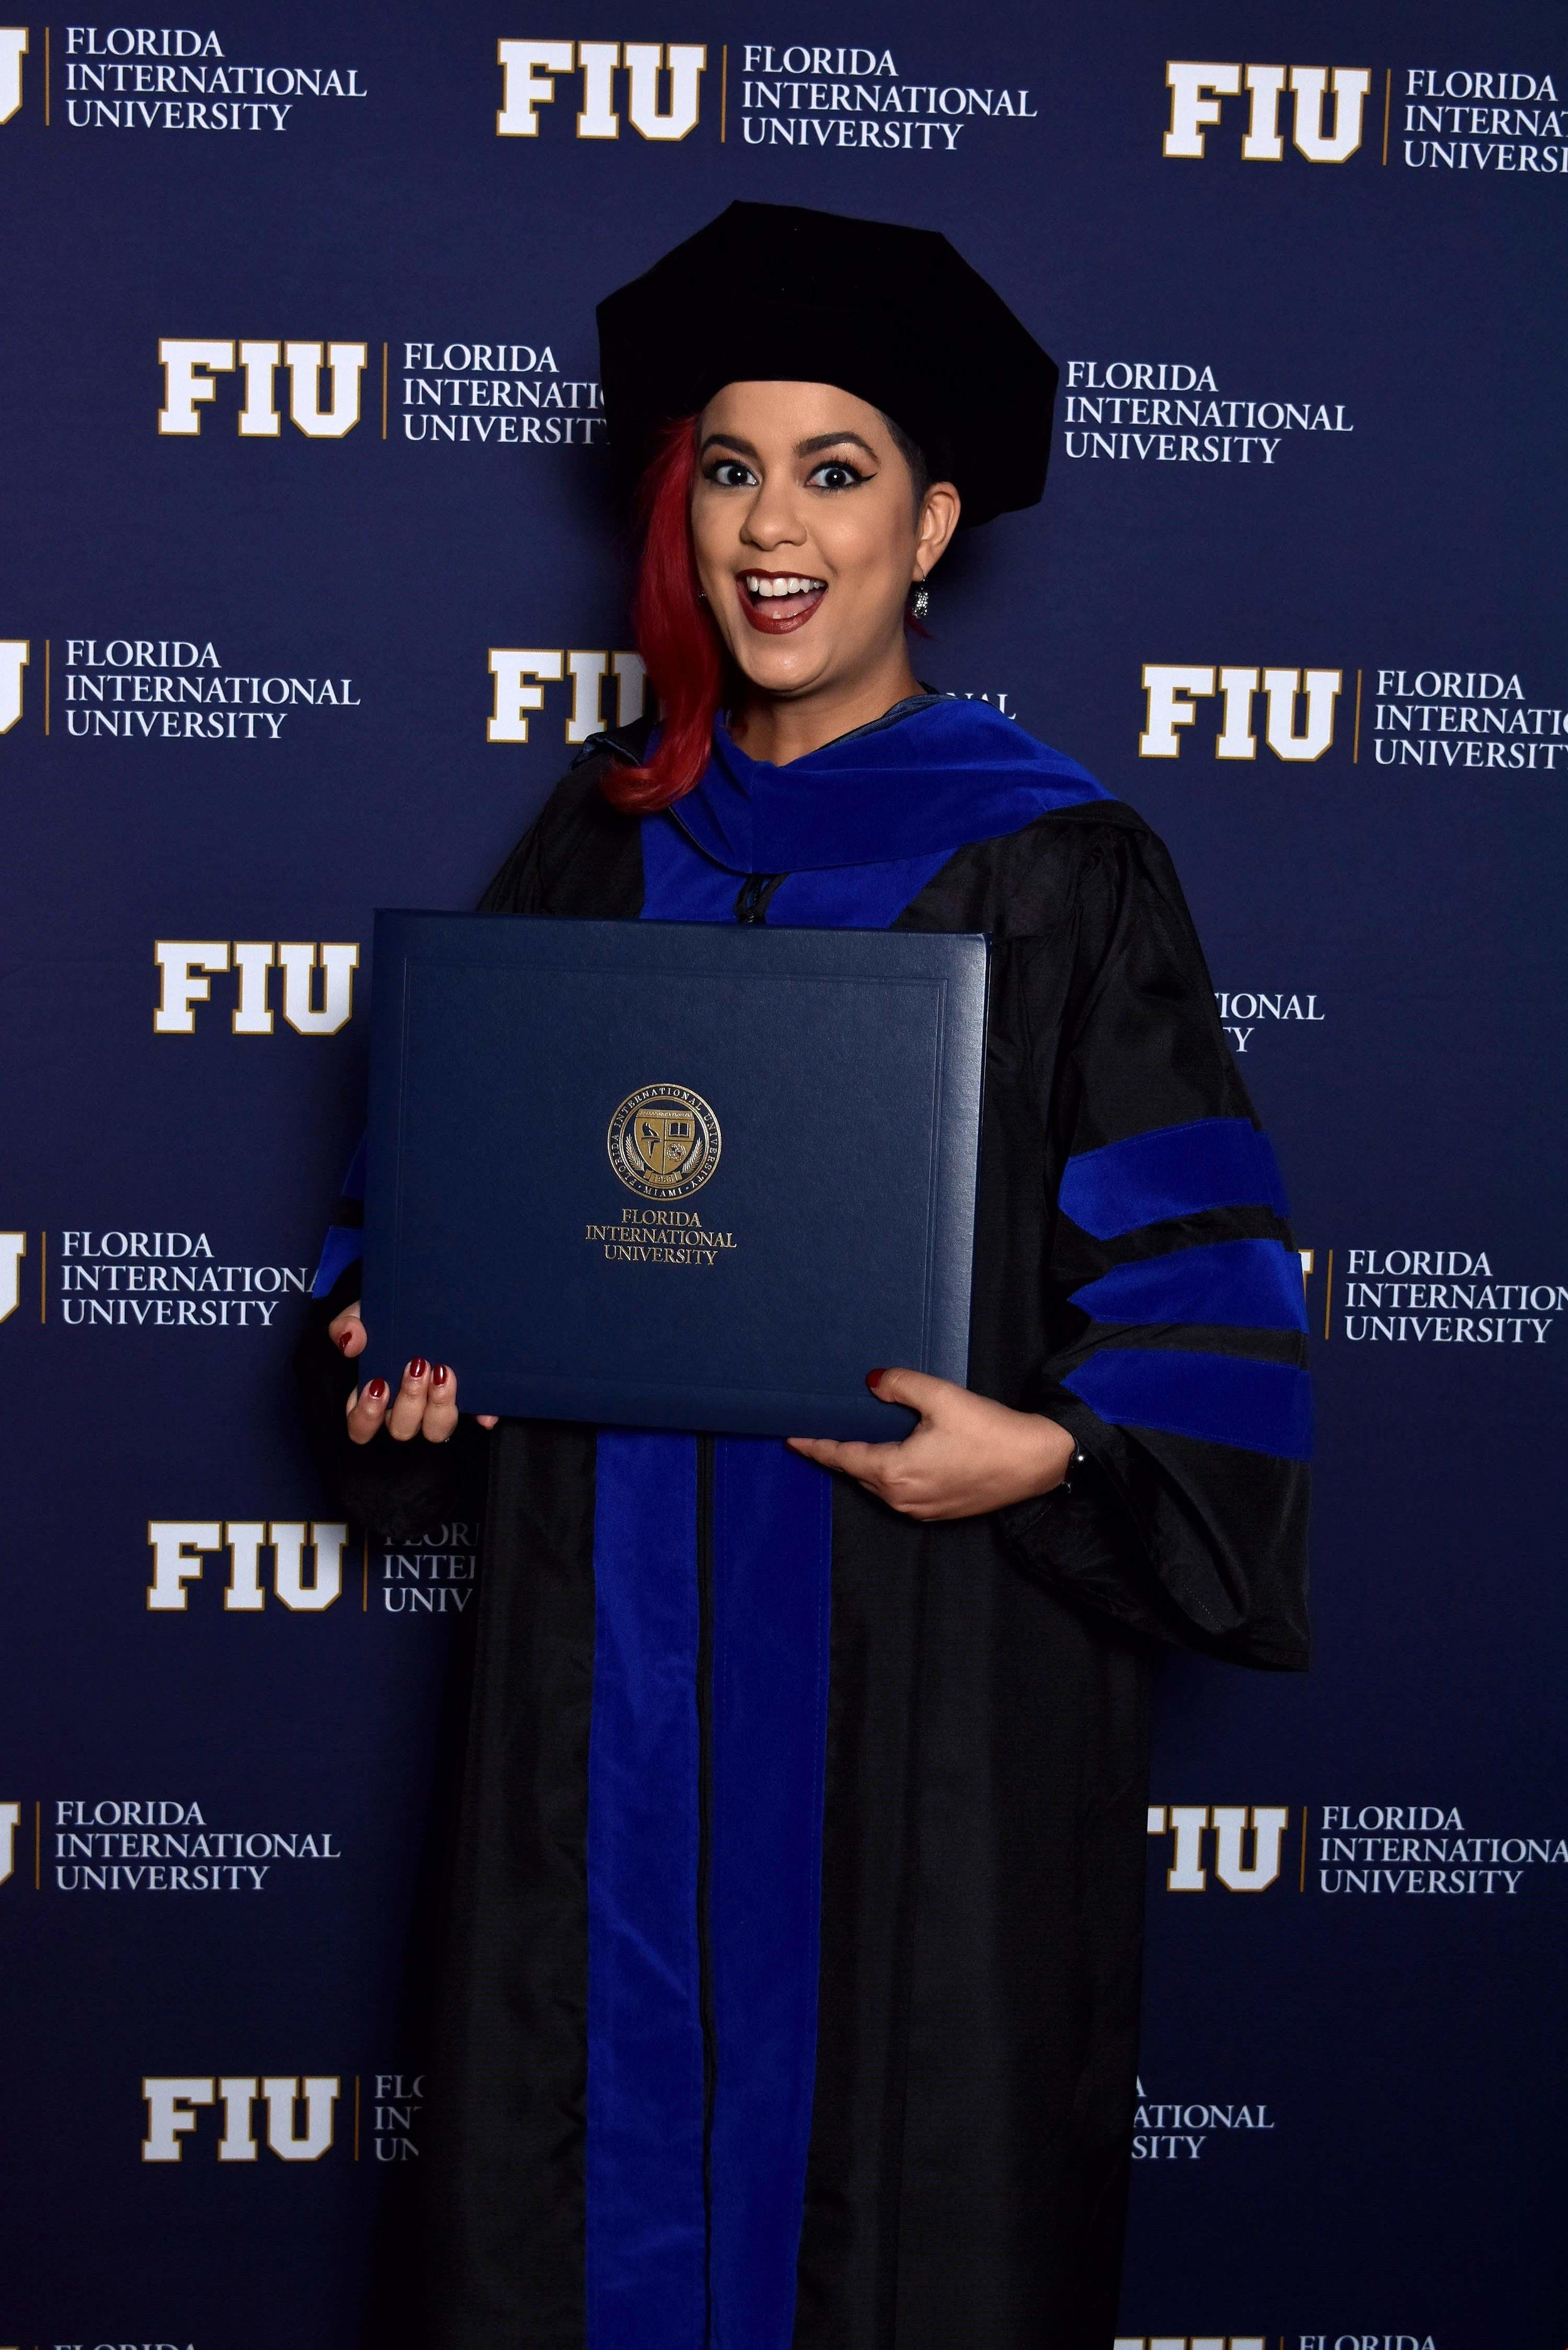 "Student. Teacher. Professional Nerd. - I earned my Ph.D. in Comparative Sociology from Florida International University in May 2018. My dissertation, titled ""For Those About to Rock: Gender Codes in the Rock Music Video Games Rock Band and Rocksmith,"" looked at the ways in which the games and marketing surrounding them both subverted and reified common societal gender scripts. Give it a read!Classes taught:AP Human GeographyIntroduction to SociologyThe Individual in SocietyCollege ReadinessStudent Life Skills"